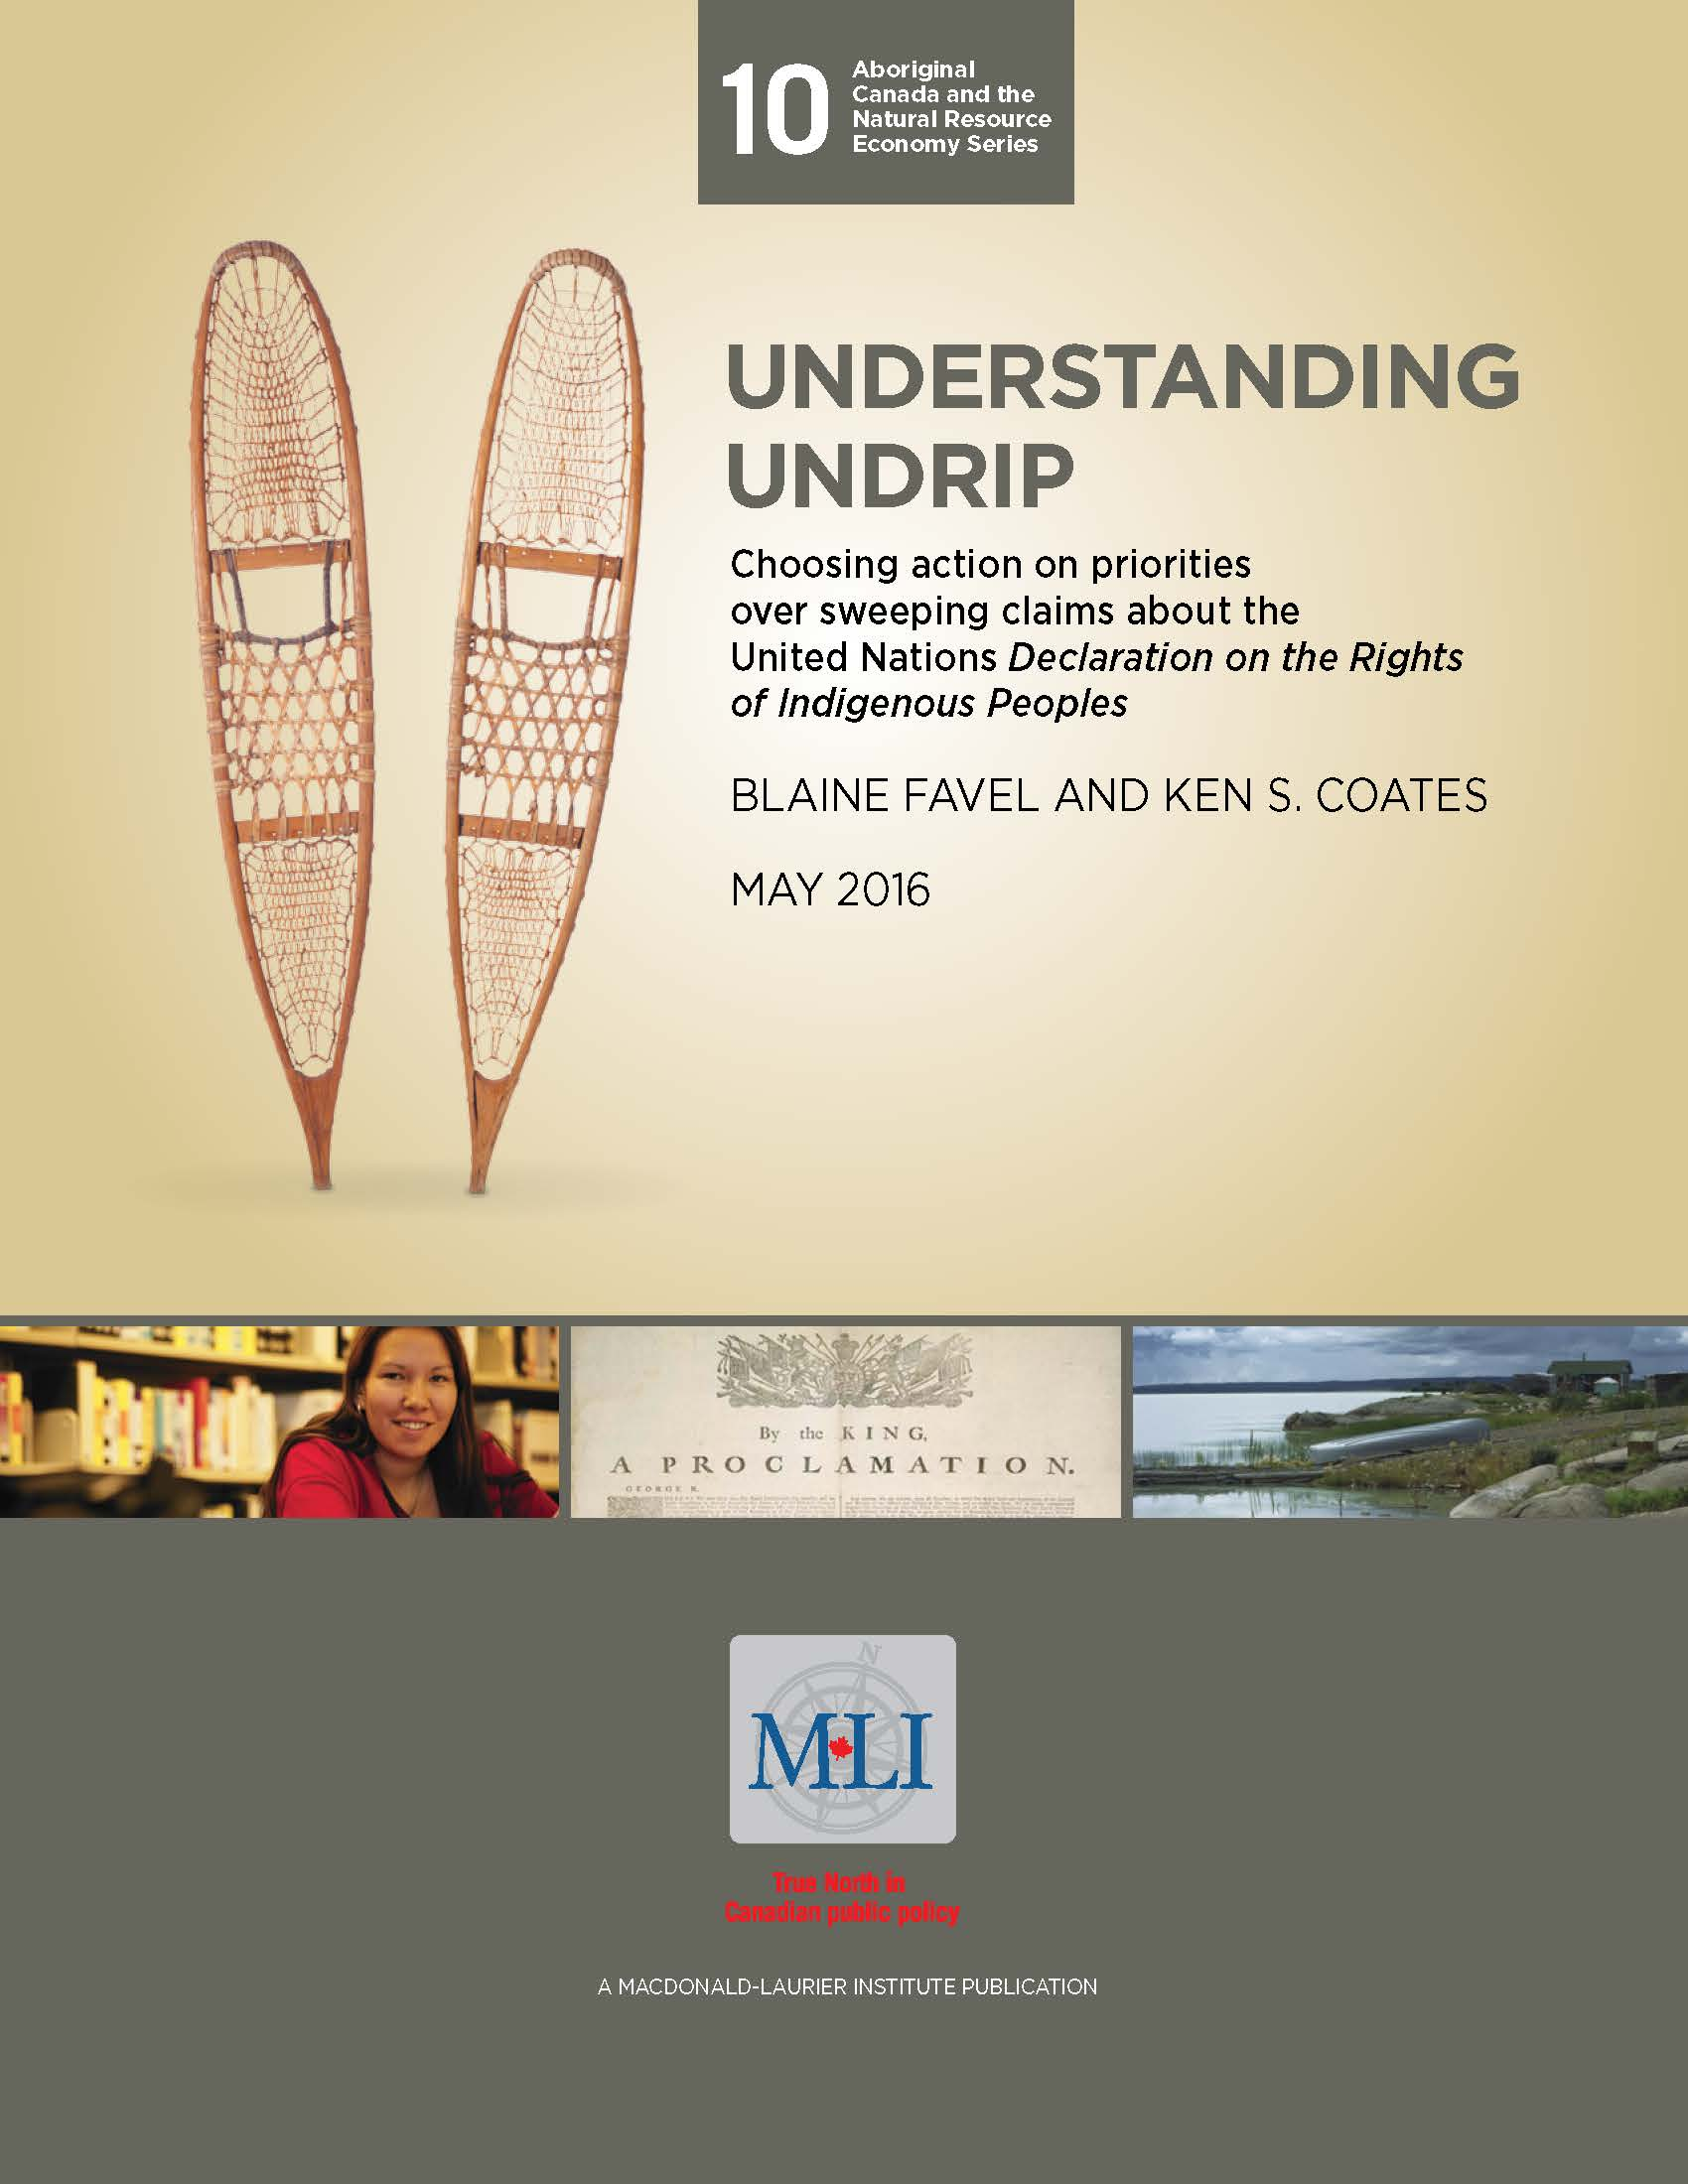 Understanding Undrip: Choosing action on priorities over sweeping claims about the United Nations Declaration on the Rights of Indigenous Peoples